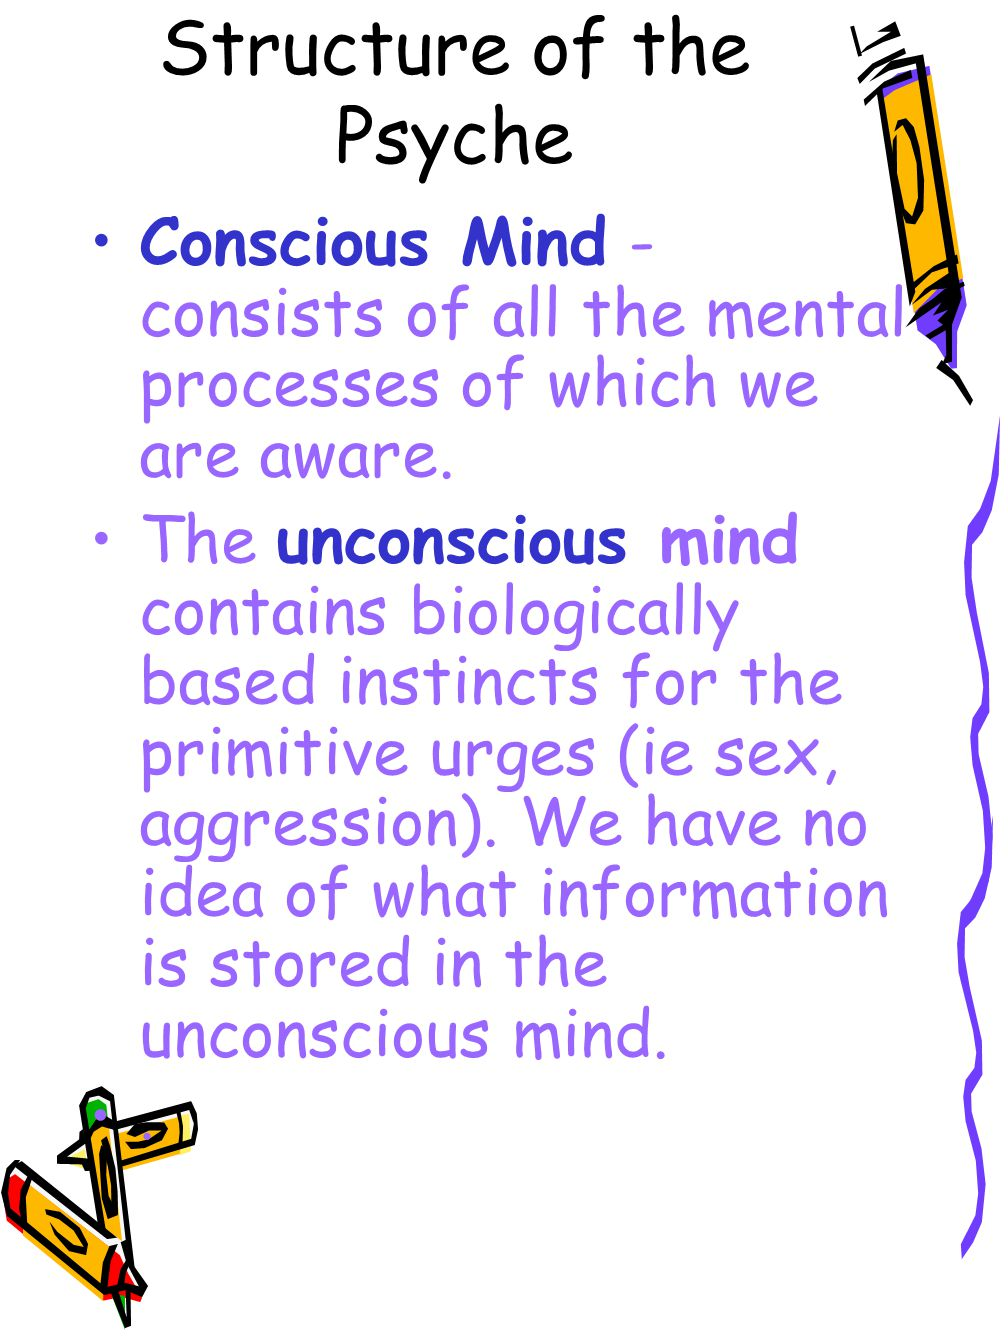 Structure of the Psyche Conscious Mind - consists of all the mental processes of which we are aware. The unconscious mind contains biologically based